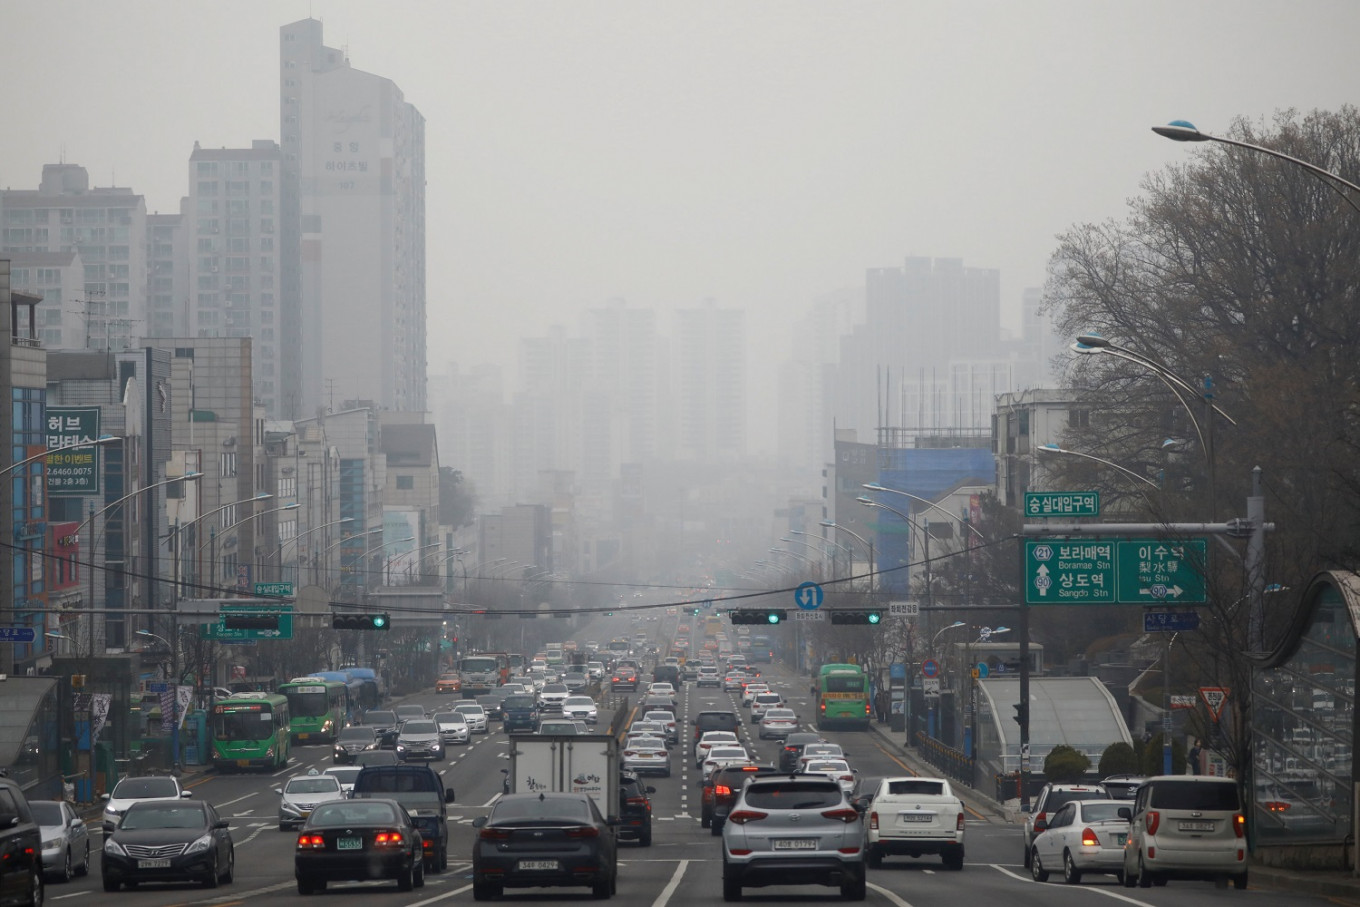 Pork for pollution? South Koreans fight smog with grease